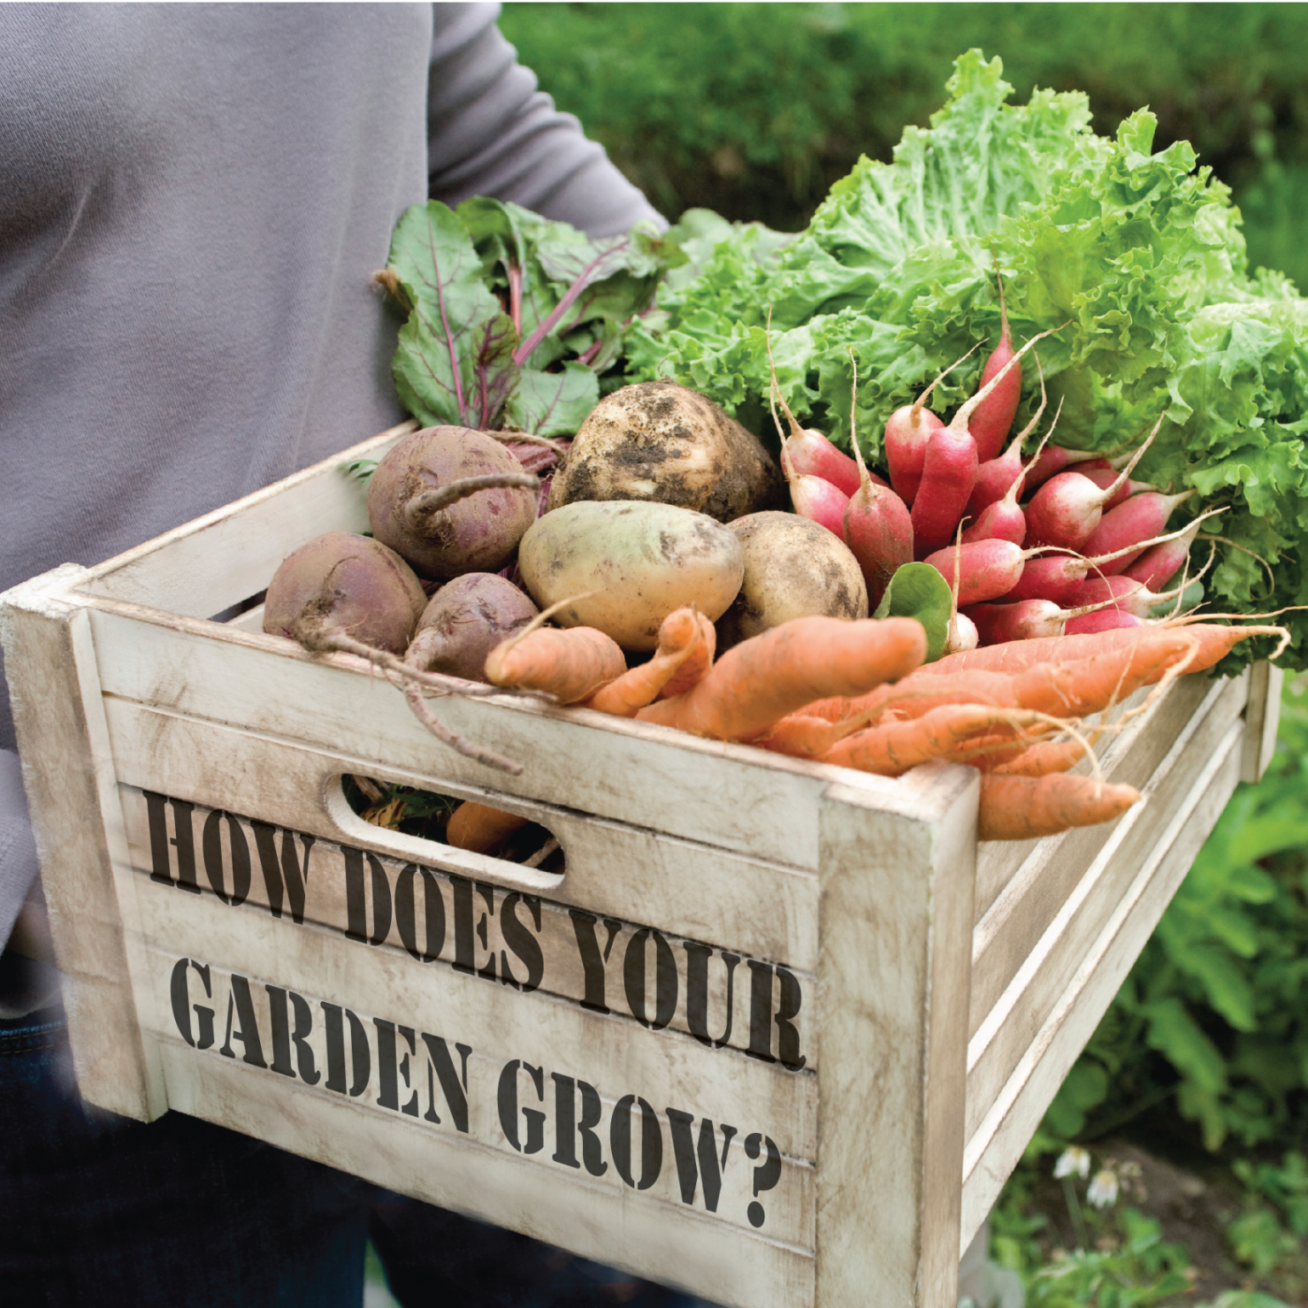 How does your Garden Grow? Container Gardening